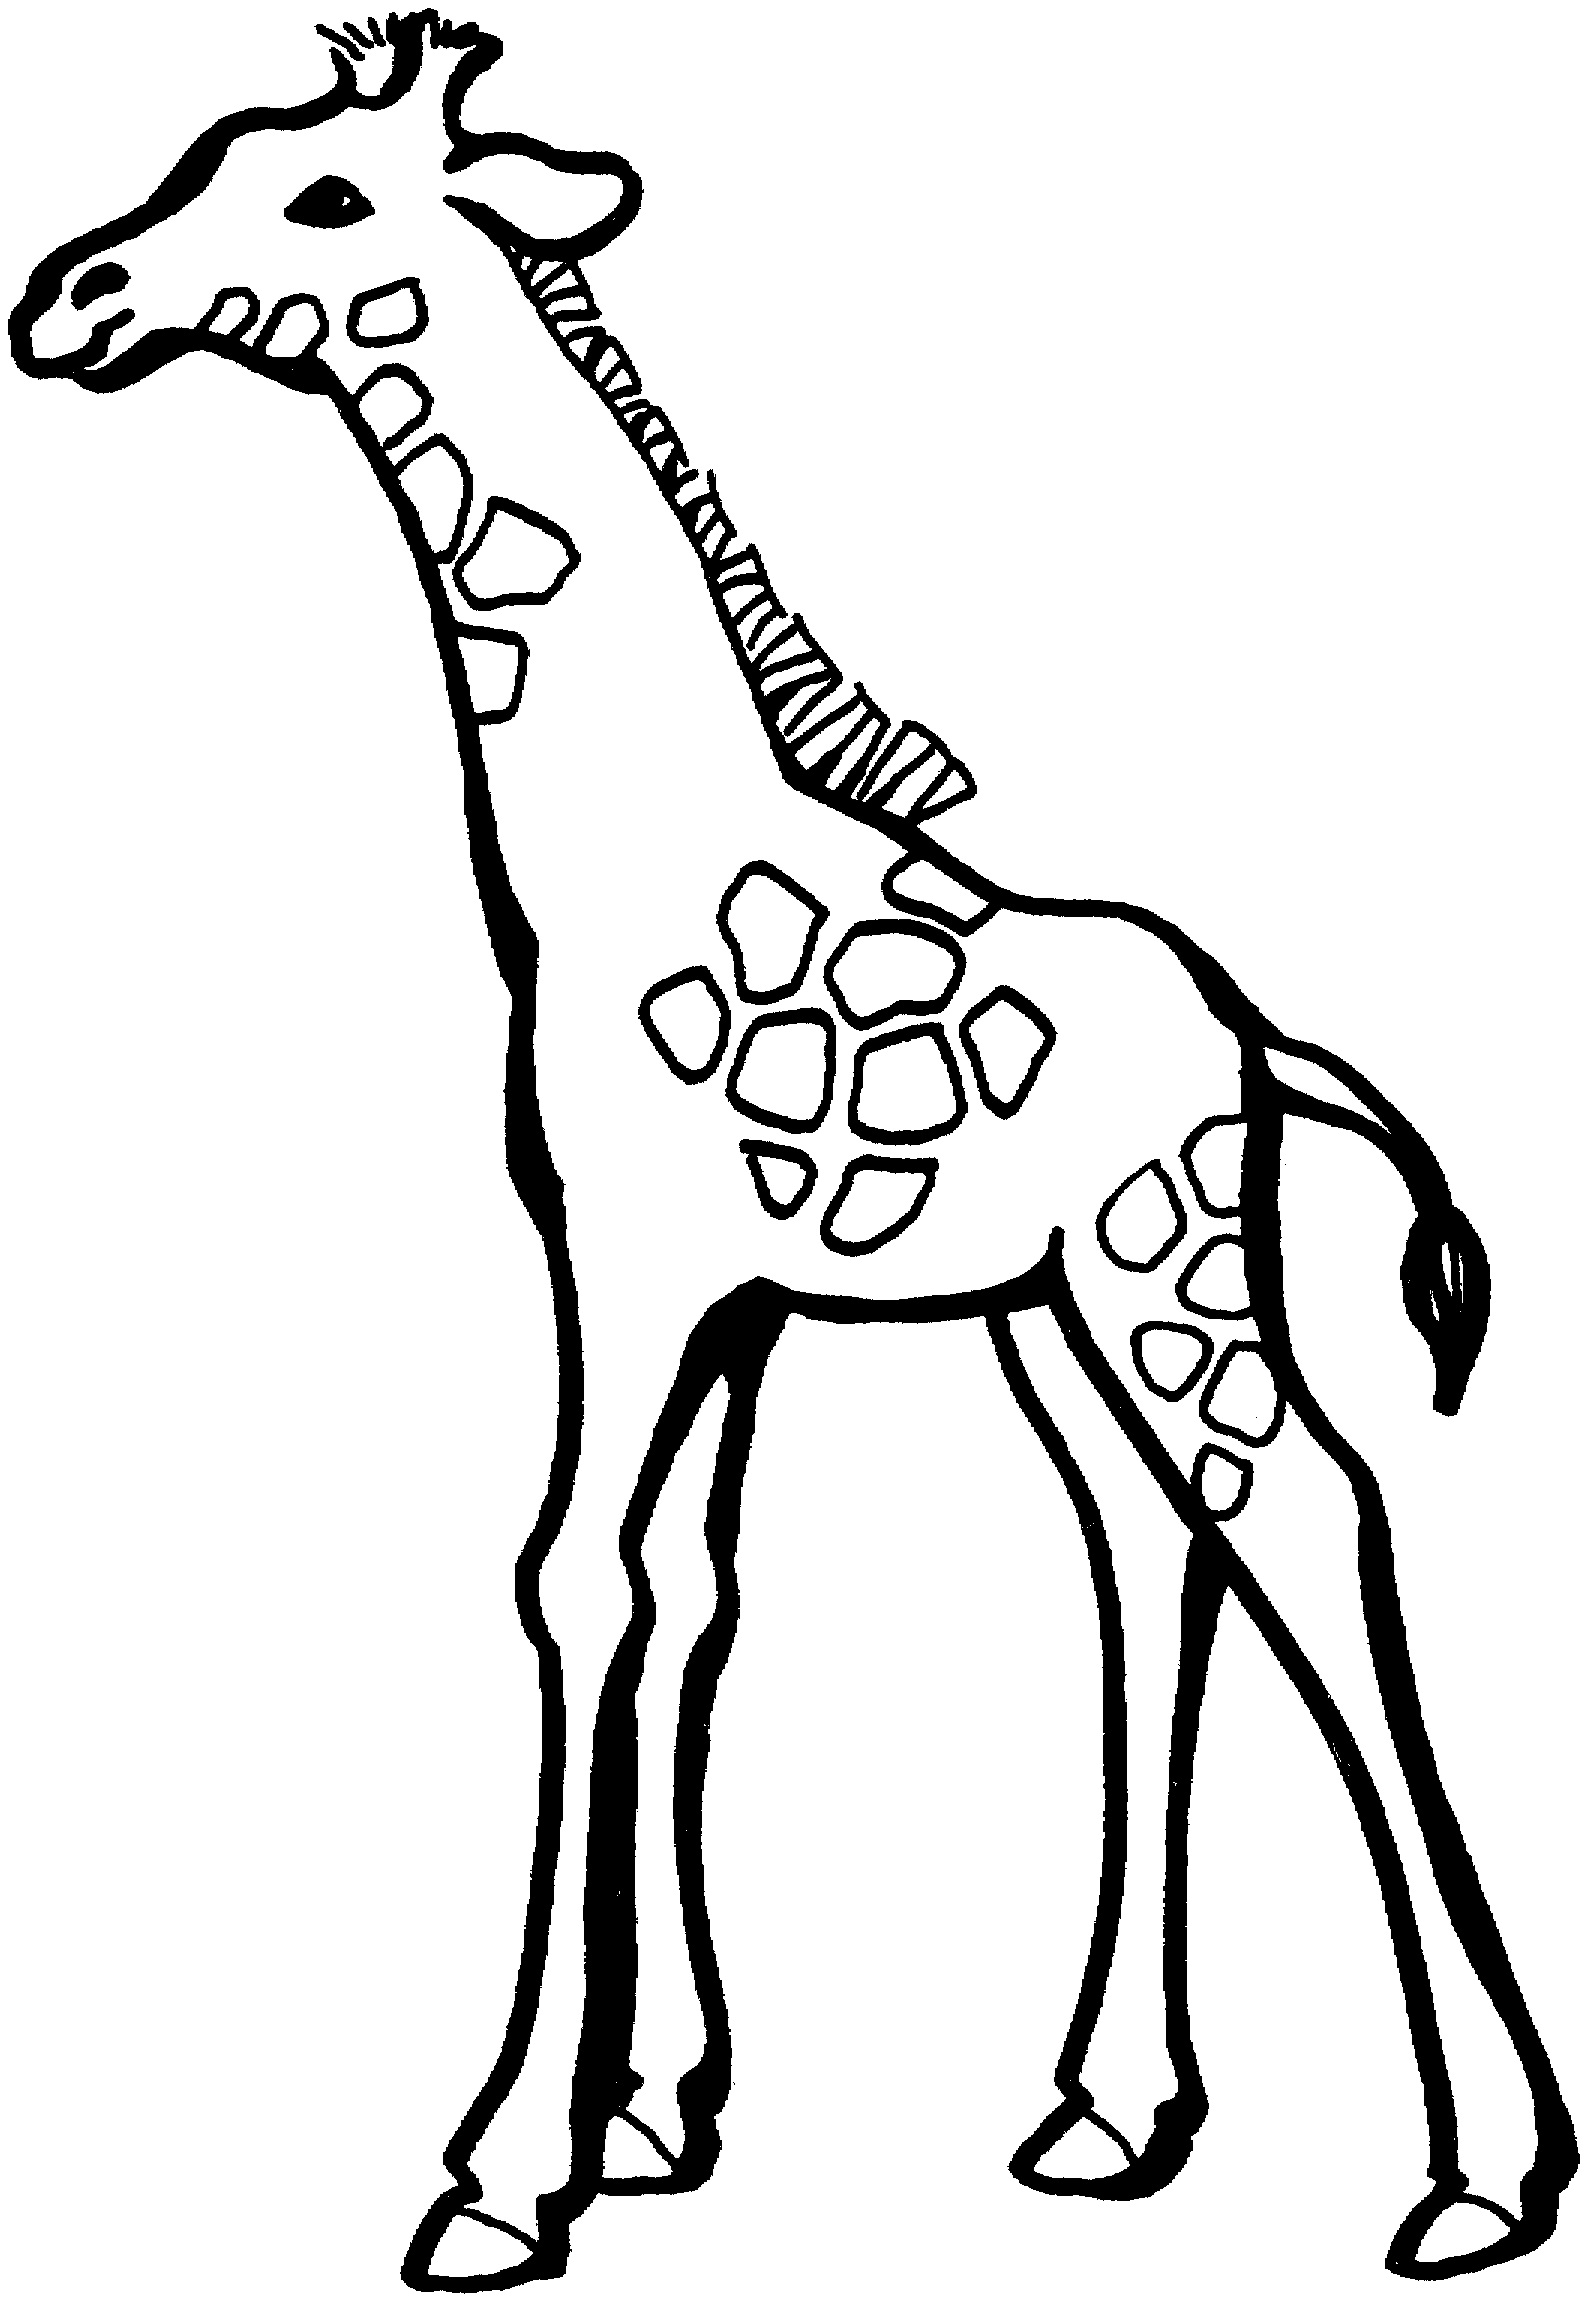 image about Printable Giraffe Pictures named No cost Printable Giraffe Coloring Webpages For Young children